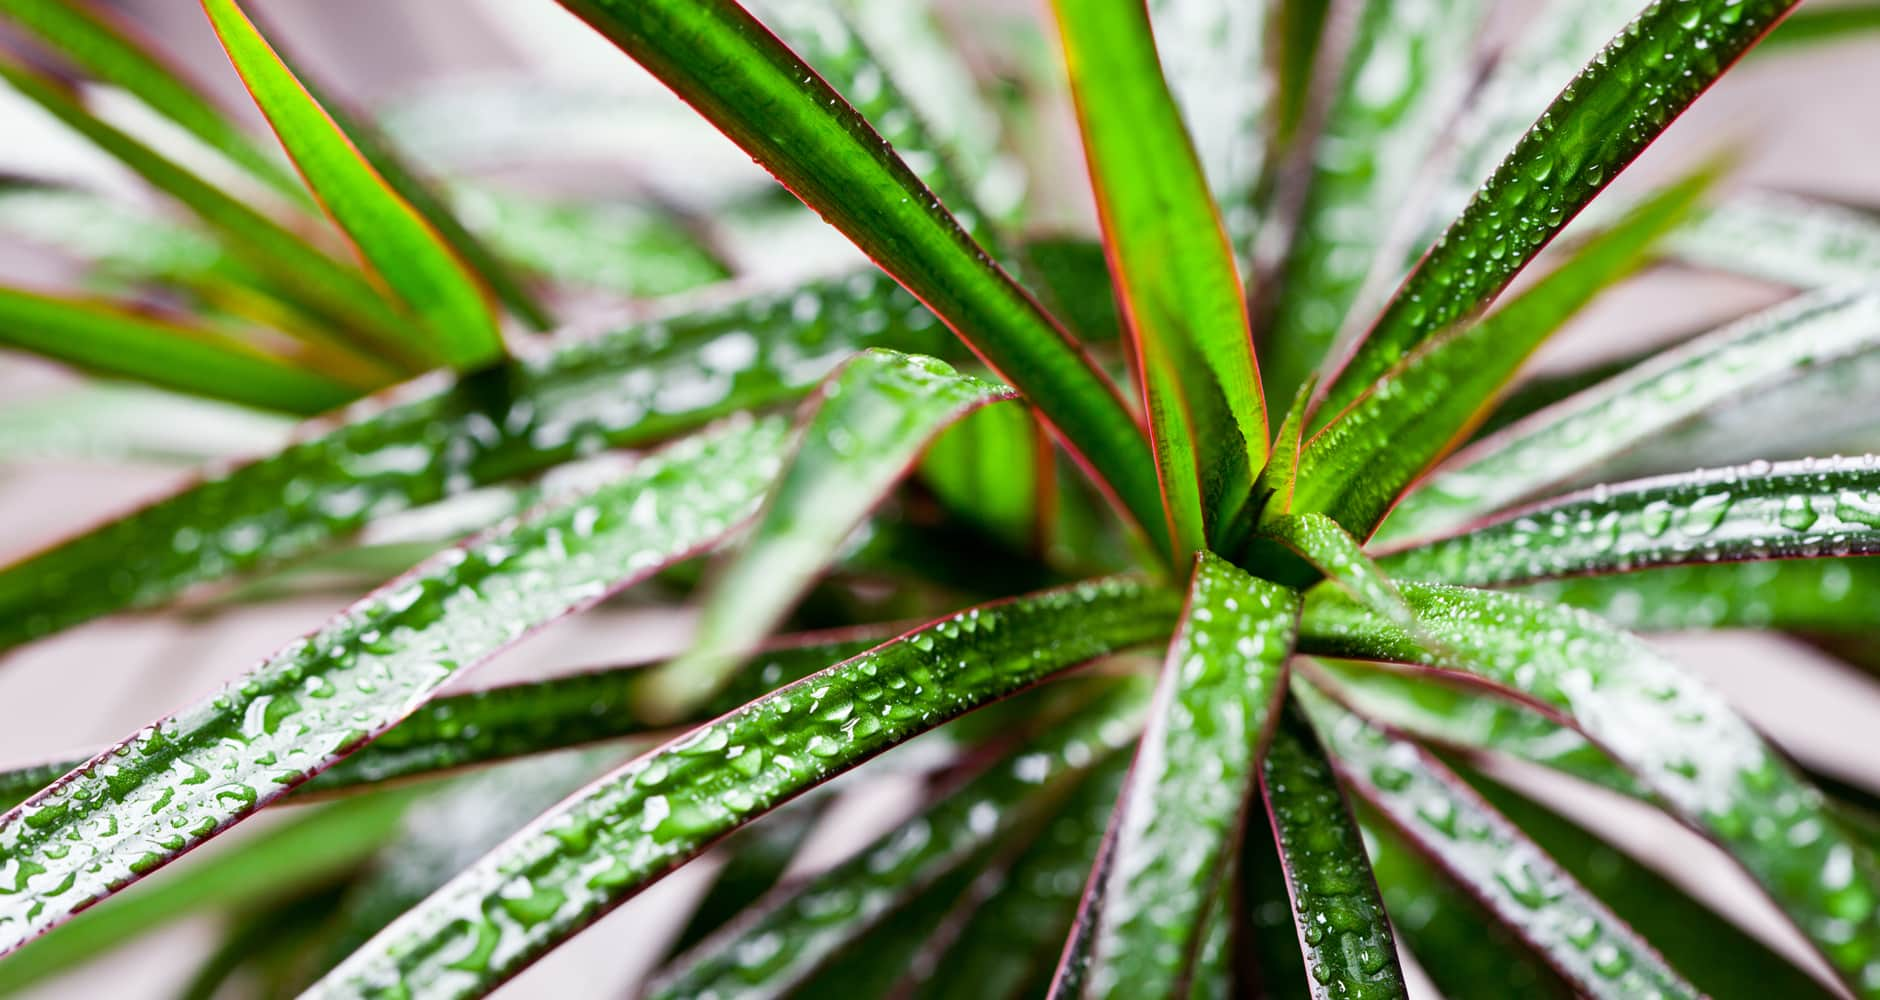 The Best Air Purifying Houseplants, According to NASAimage preview